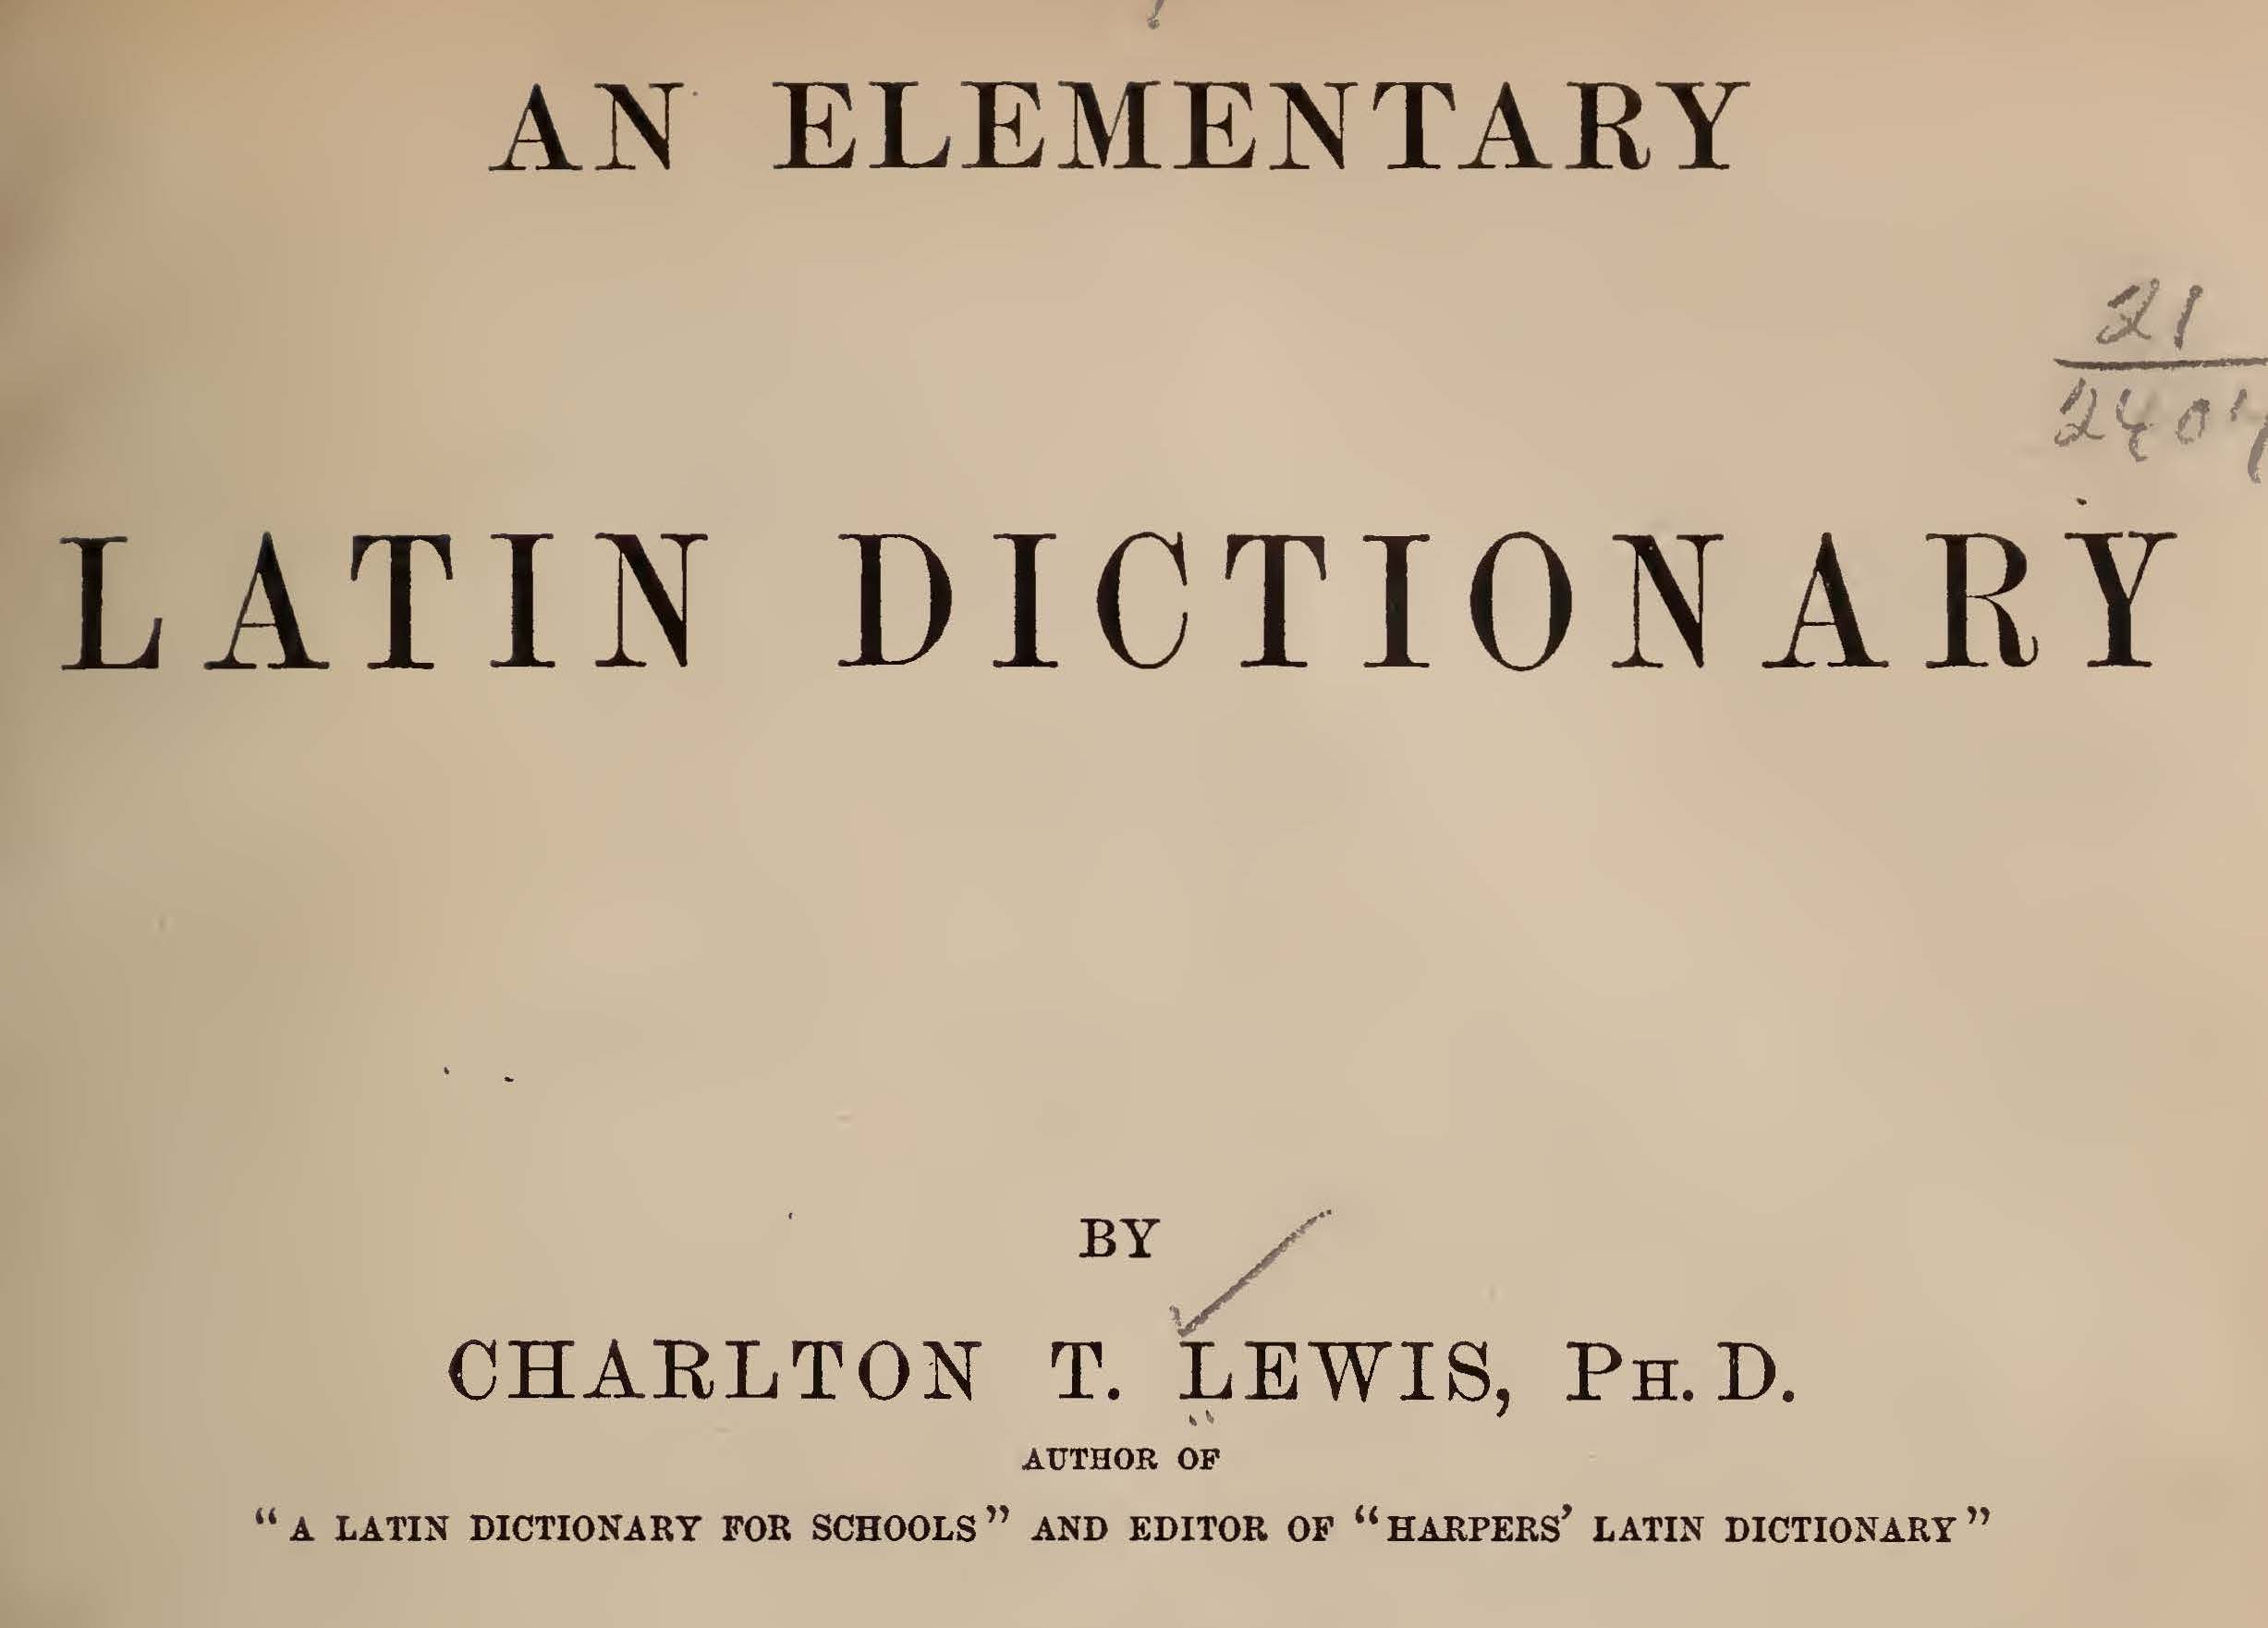 C. Lewis' Elementary Latin Dictionary